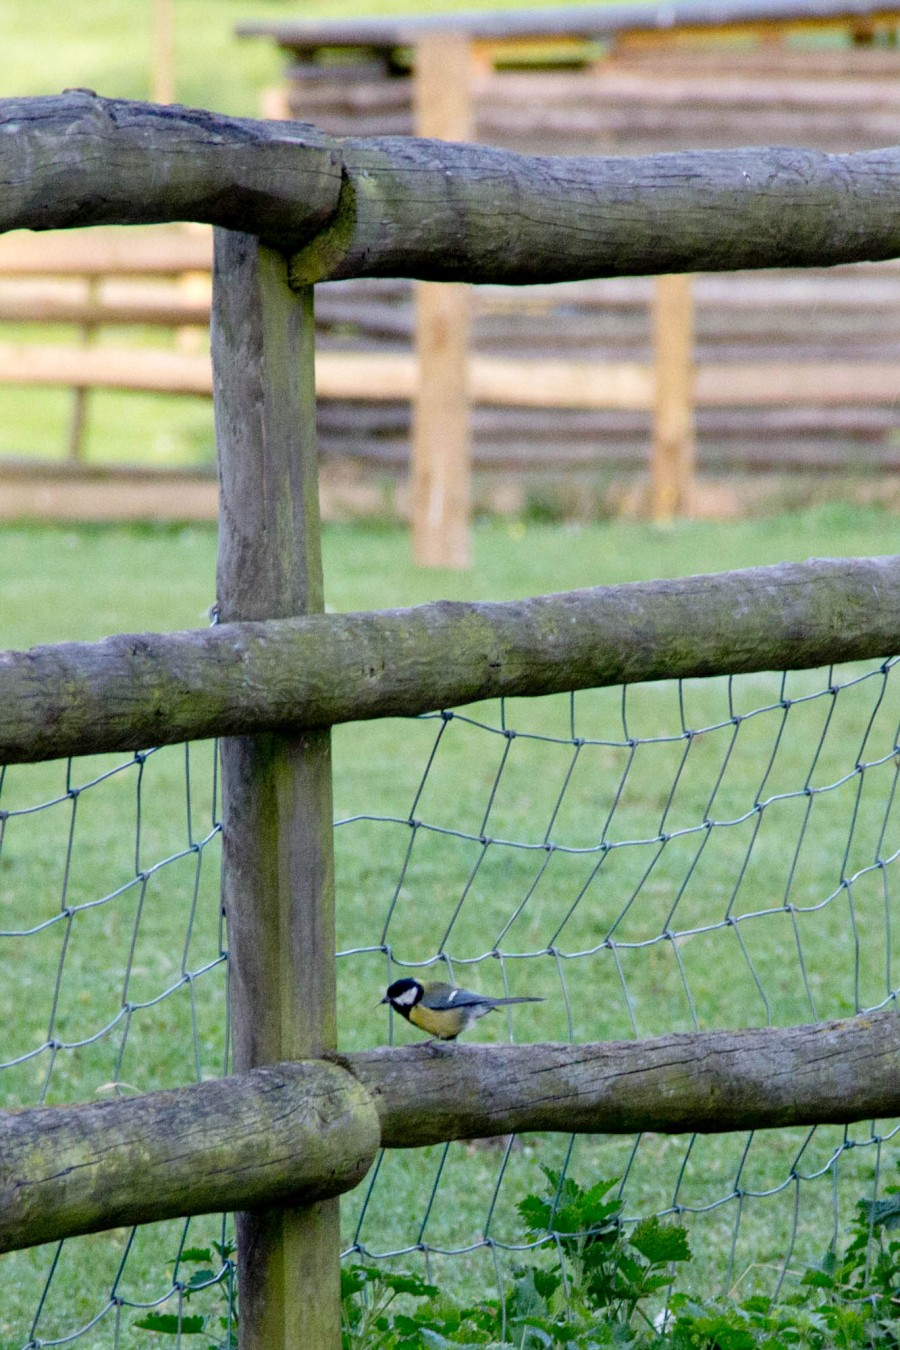 A Great Tit rests on a fence.